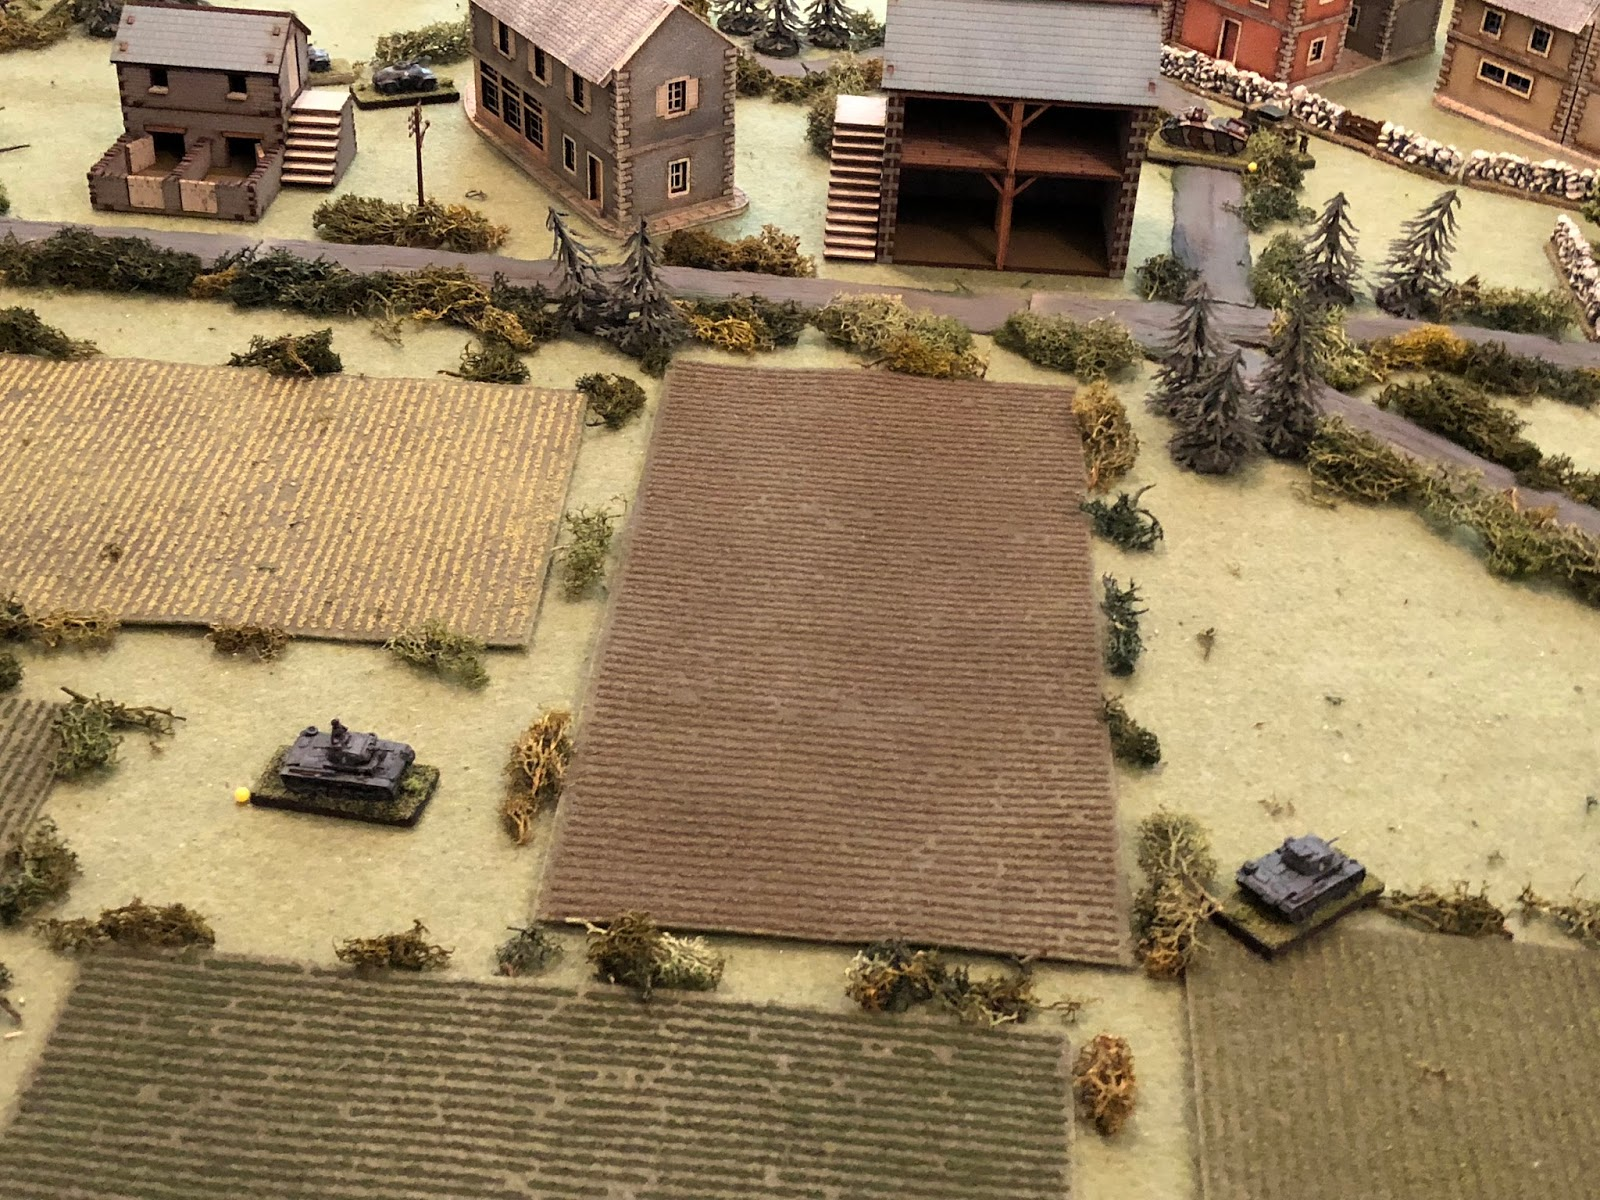 Sgt Mayer thinks he's going to get on the flank but his tank bottoms out in a rut in the field (bottom right), significantly slowing it down, while Lt Loeb's driver (left) appears to be having problems manipulating the transmission, as they don't move very far either...  *the beauty of dicing for movement! It's awesome!